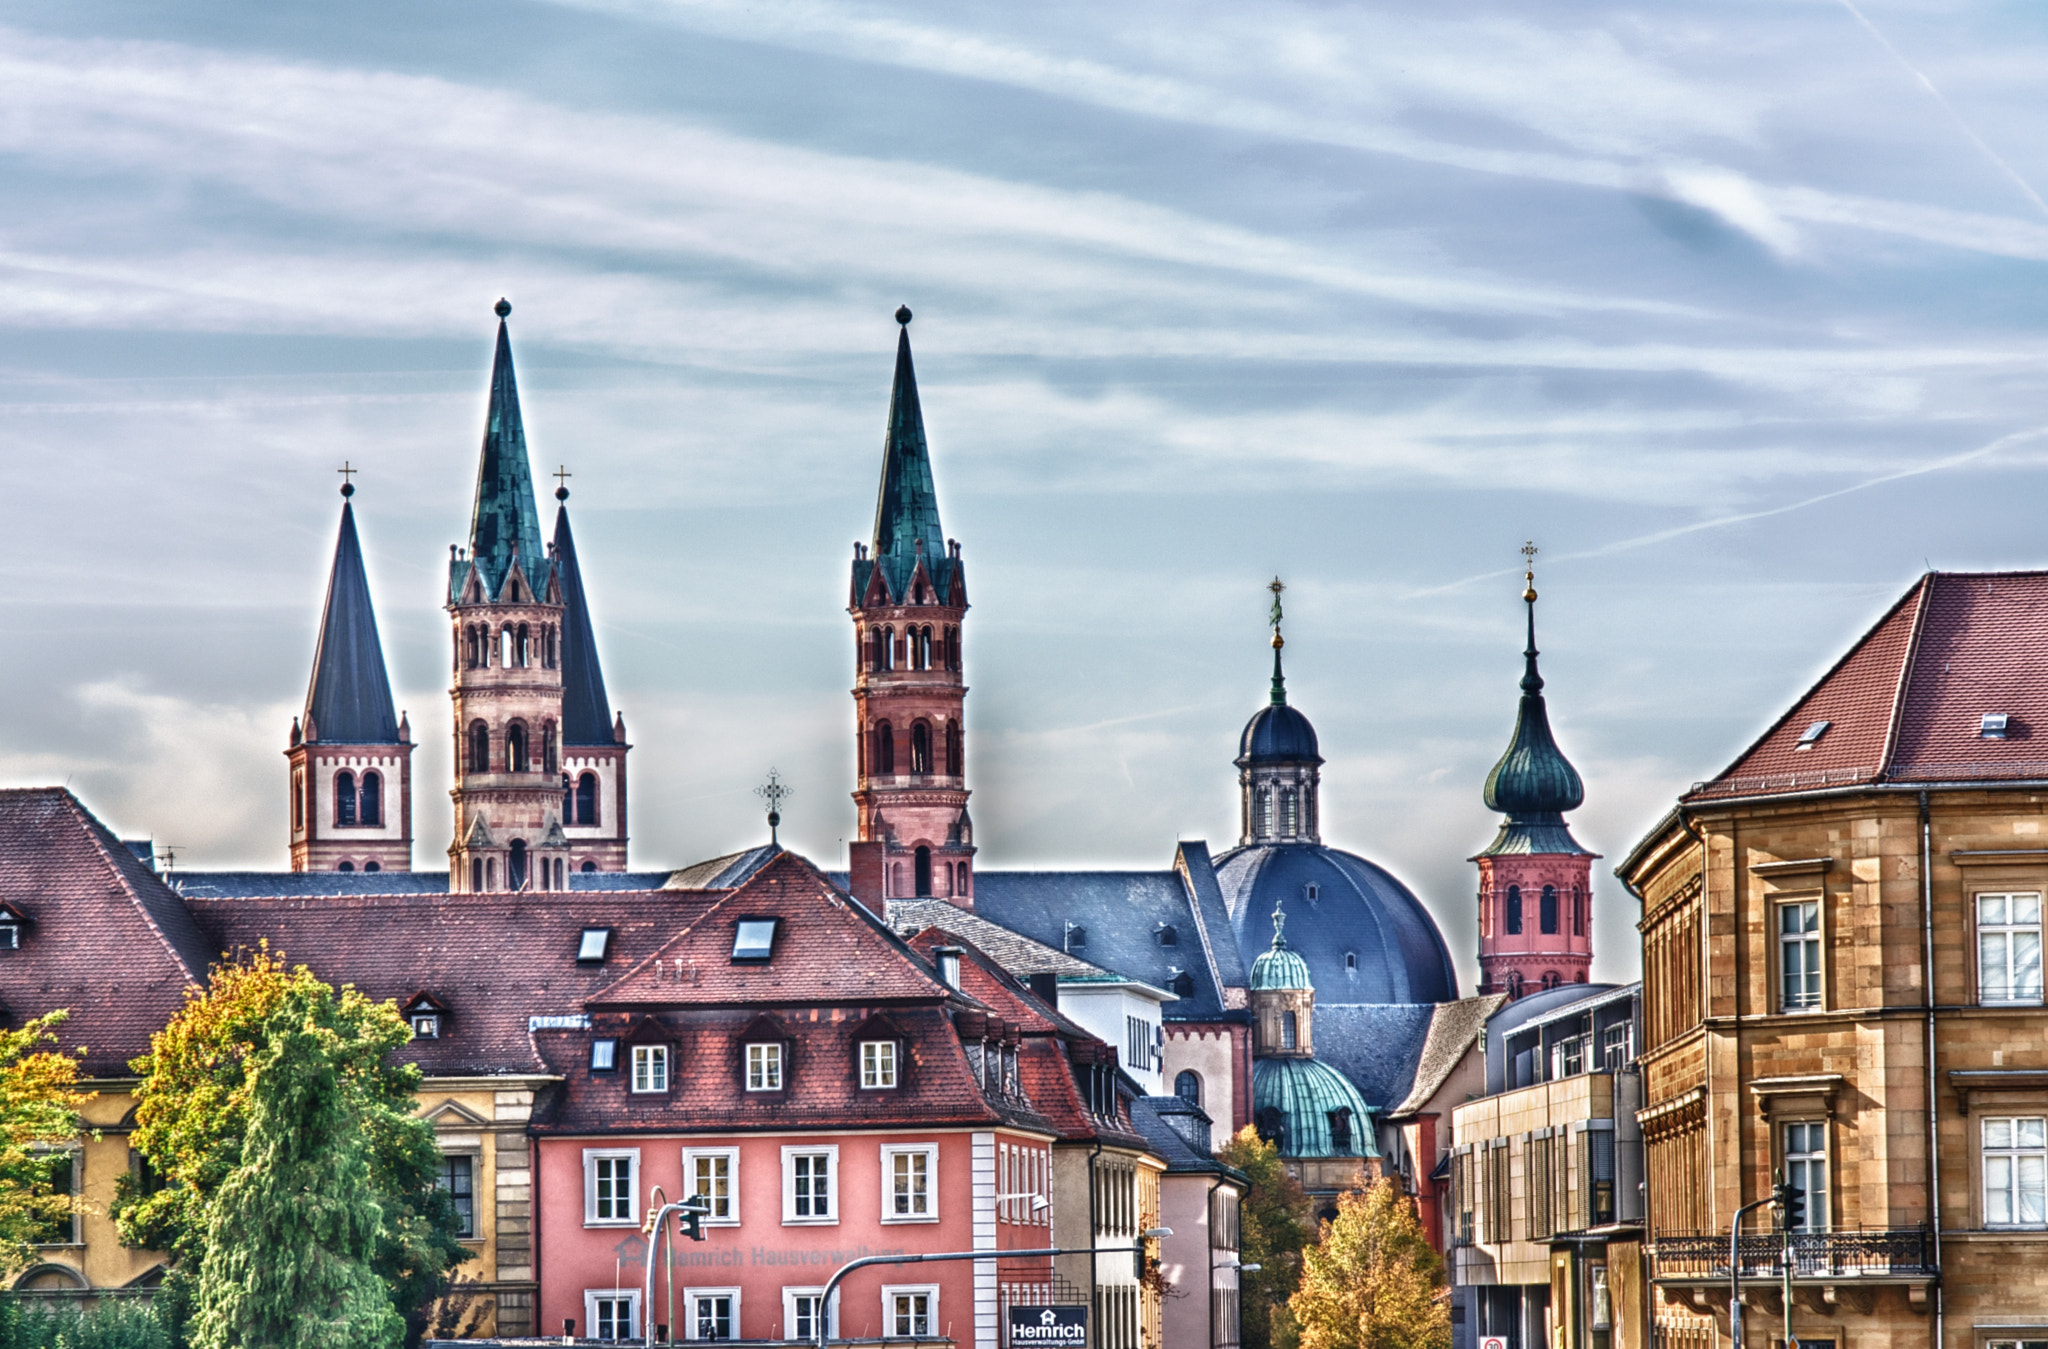 Photograph Würzburg by Kim D. S. on 500px